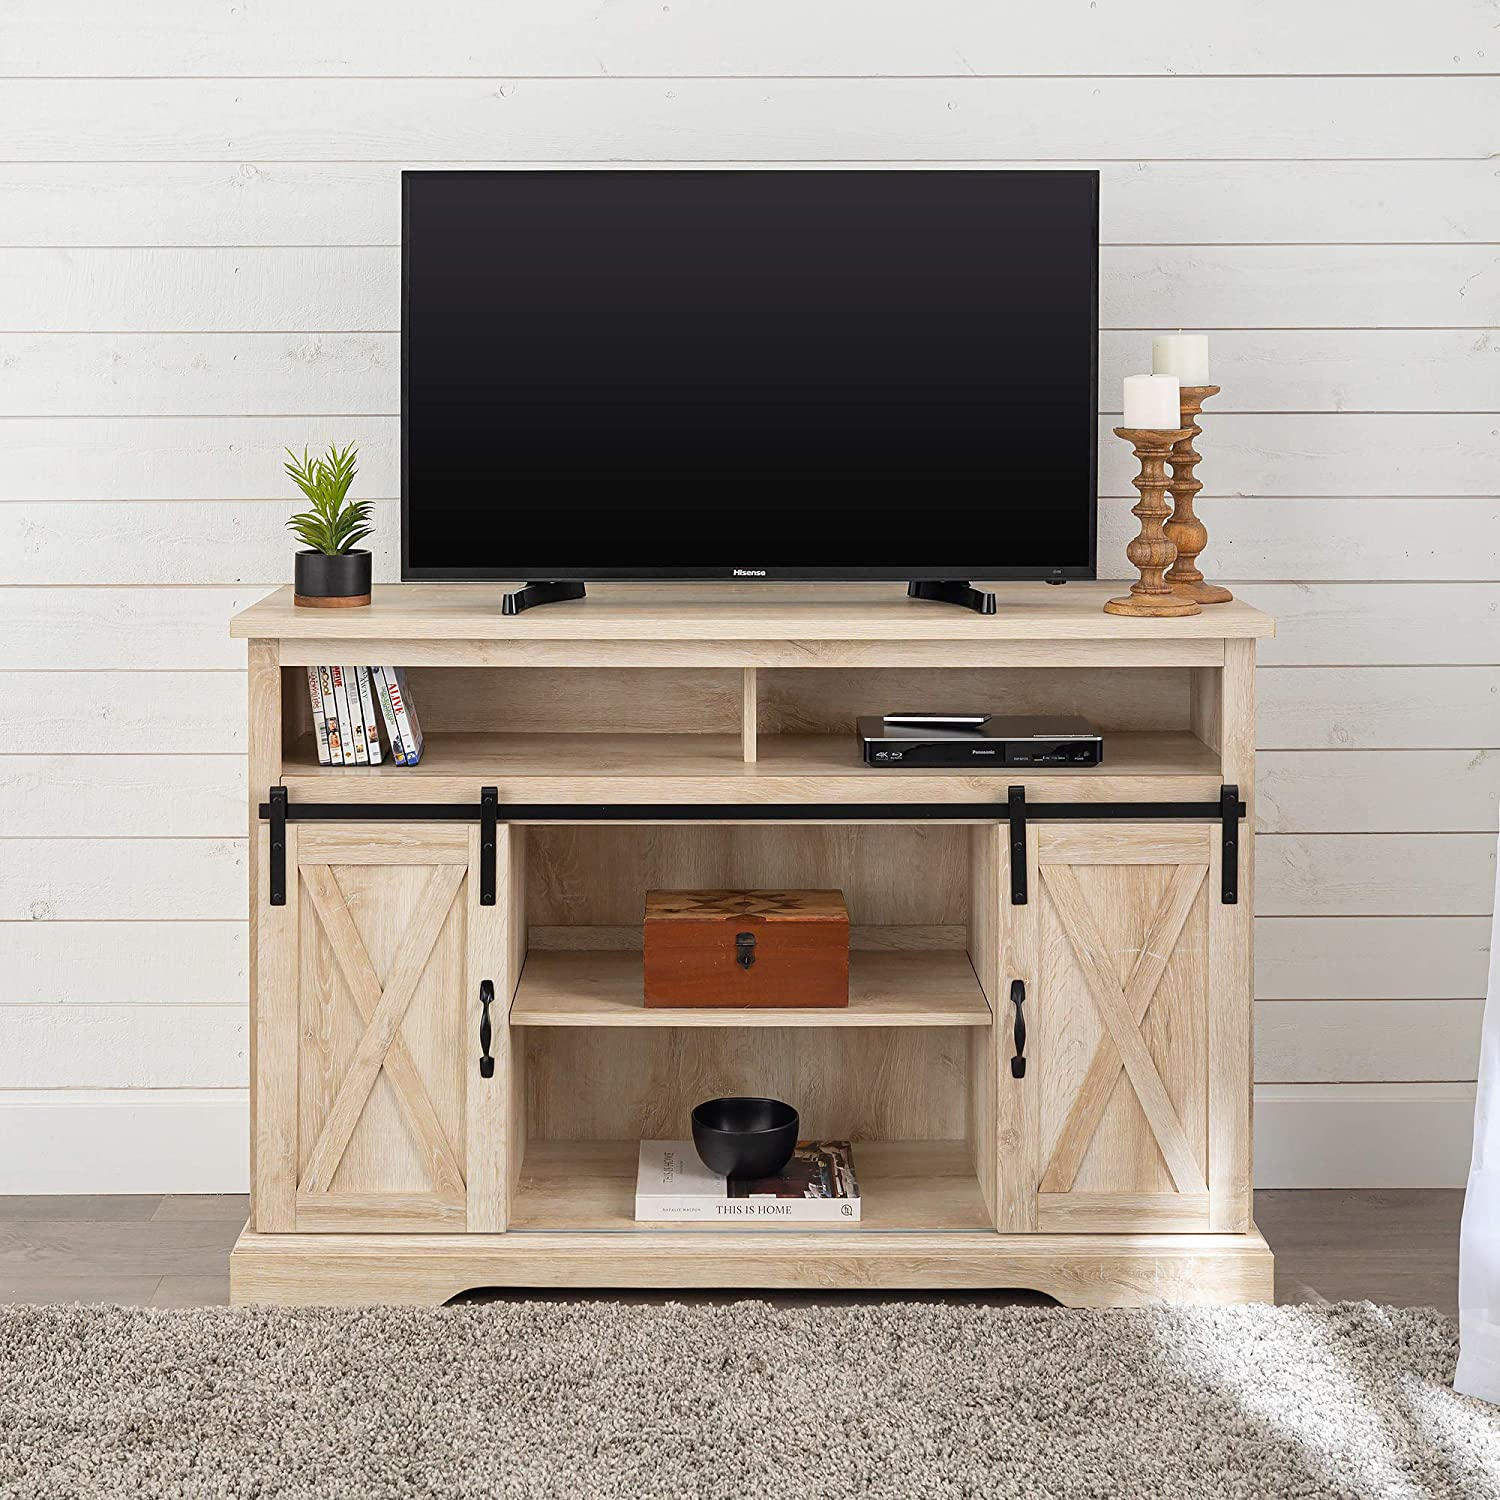 """Walker Edison Furniture Company Modern Farmhouse Sliding Barndoor Wood Tall Universal Stand for TV's up to 58"""" Flat Screen"""